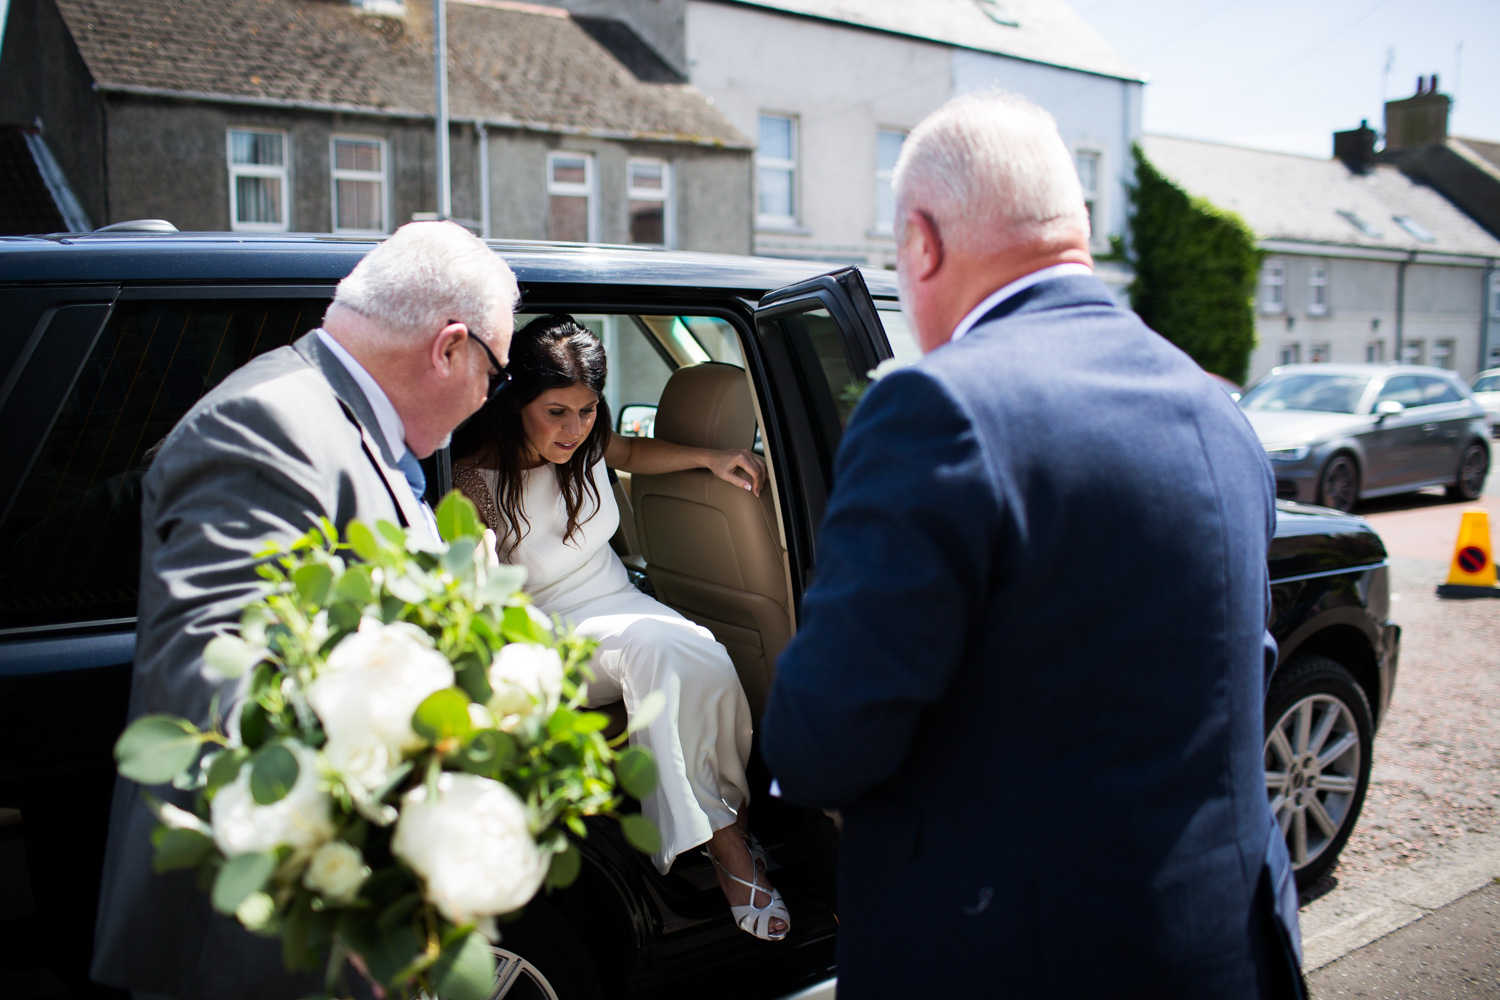 Mark_Barnes_Northern_Ireland_wedding_photographer_Kilmore_House_Wedding_photography_Kilmore_House_wedding_photographer-14.jpg